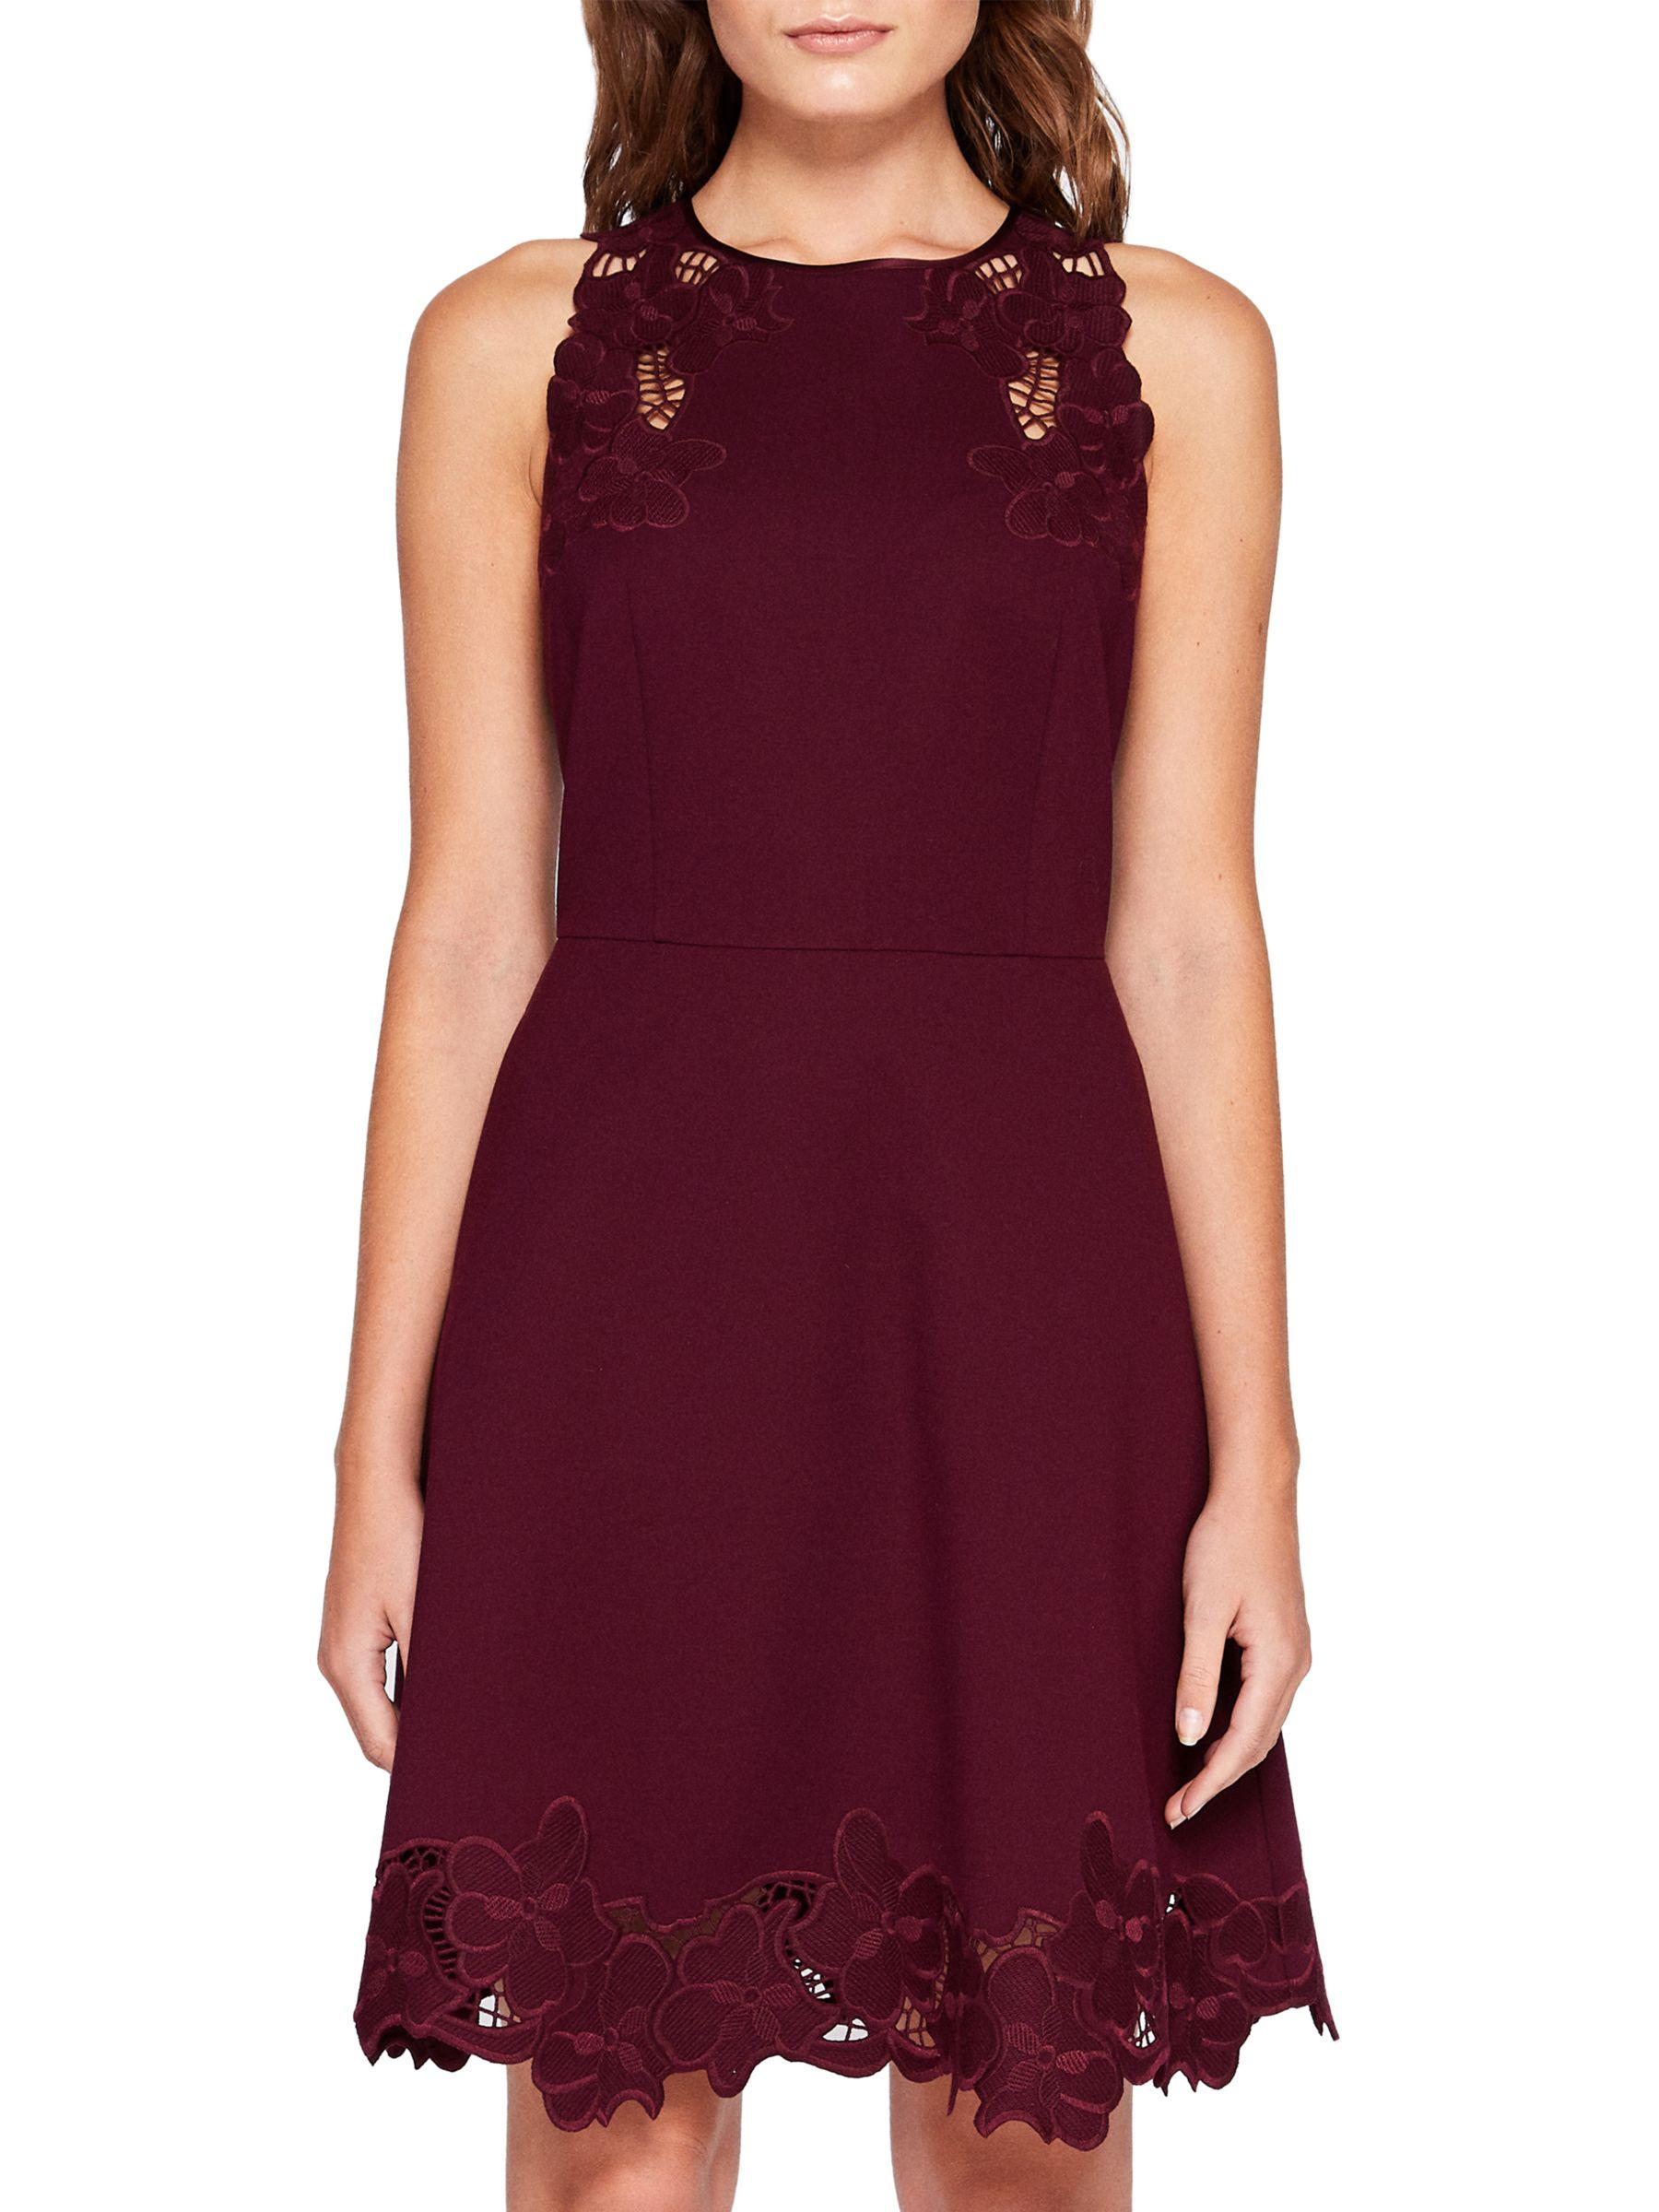 222d5a8a27 Ted Baker Emmona Embroidered Skater Dress in Purple - Lyst